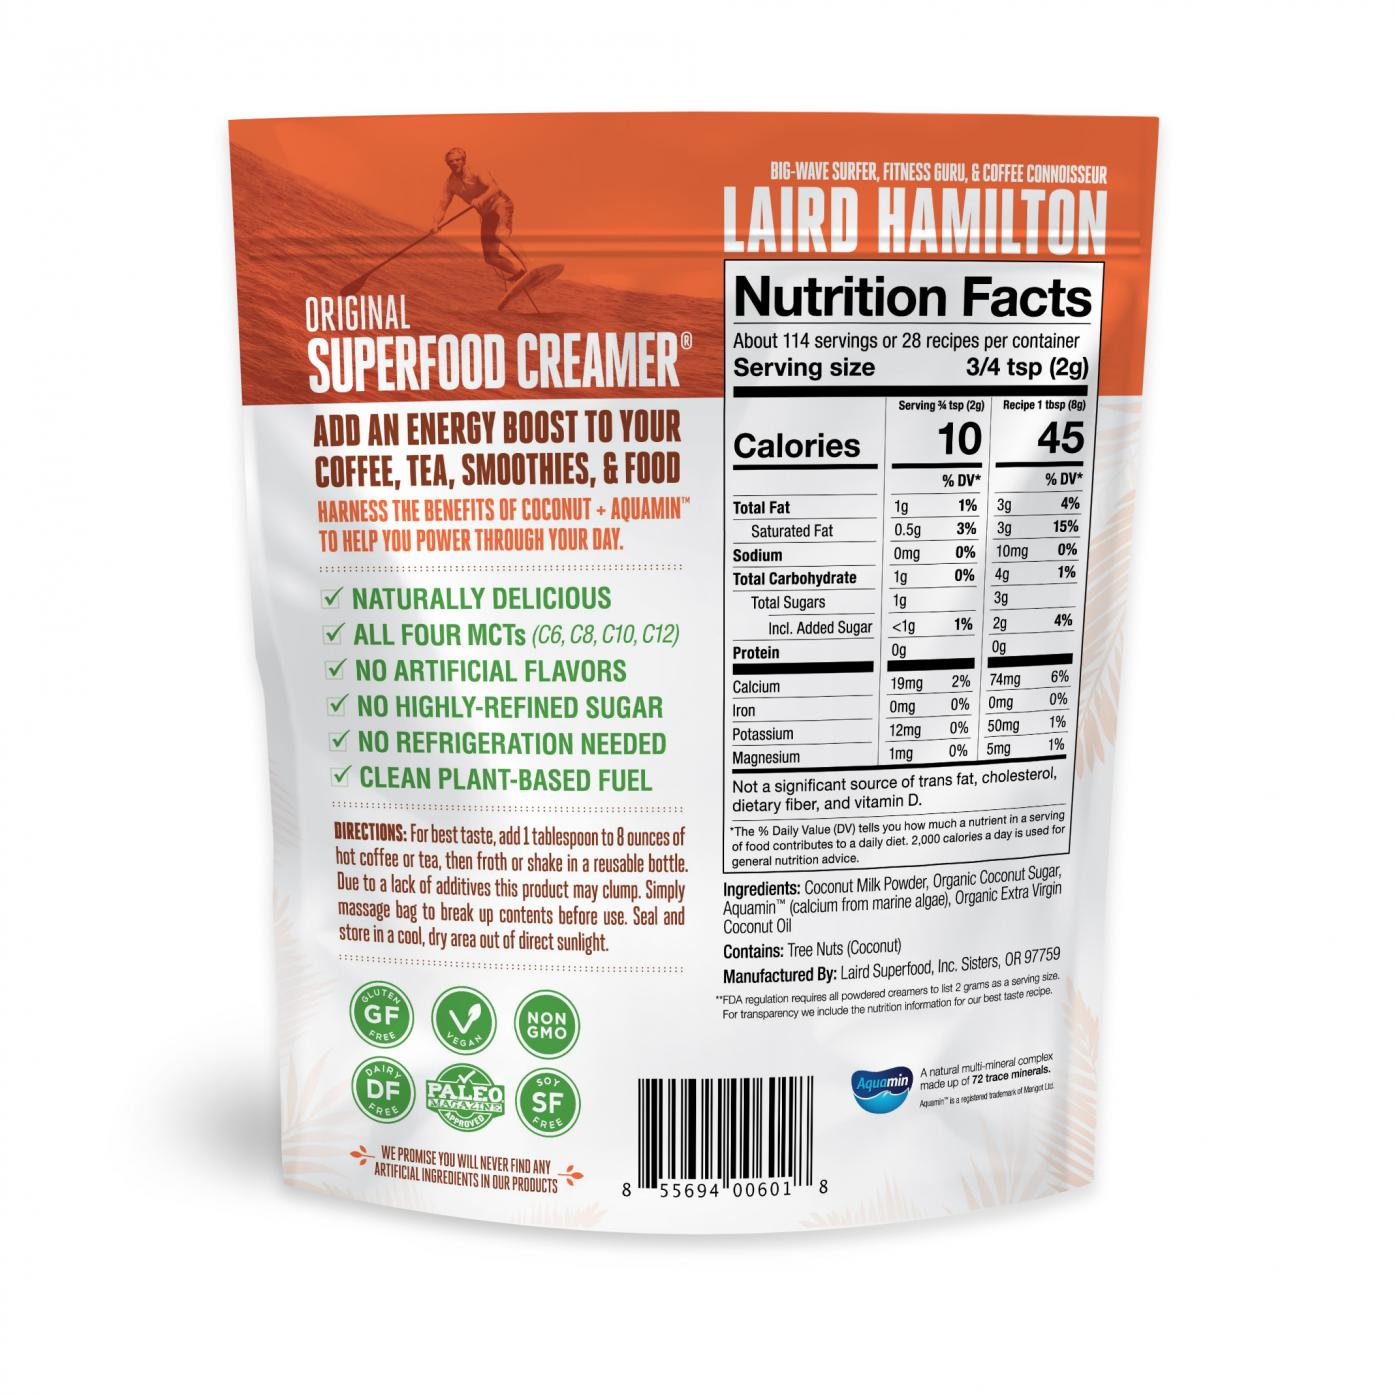 Original Superfood Creamer 227g (Currently Unavailable)